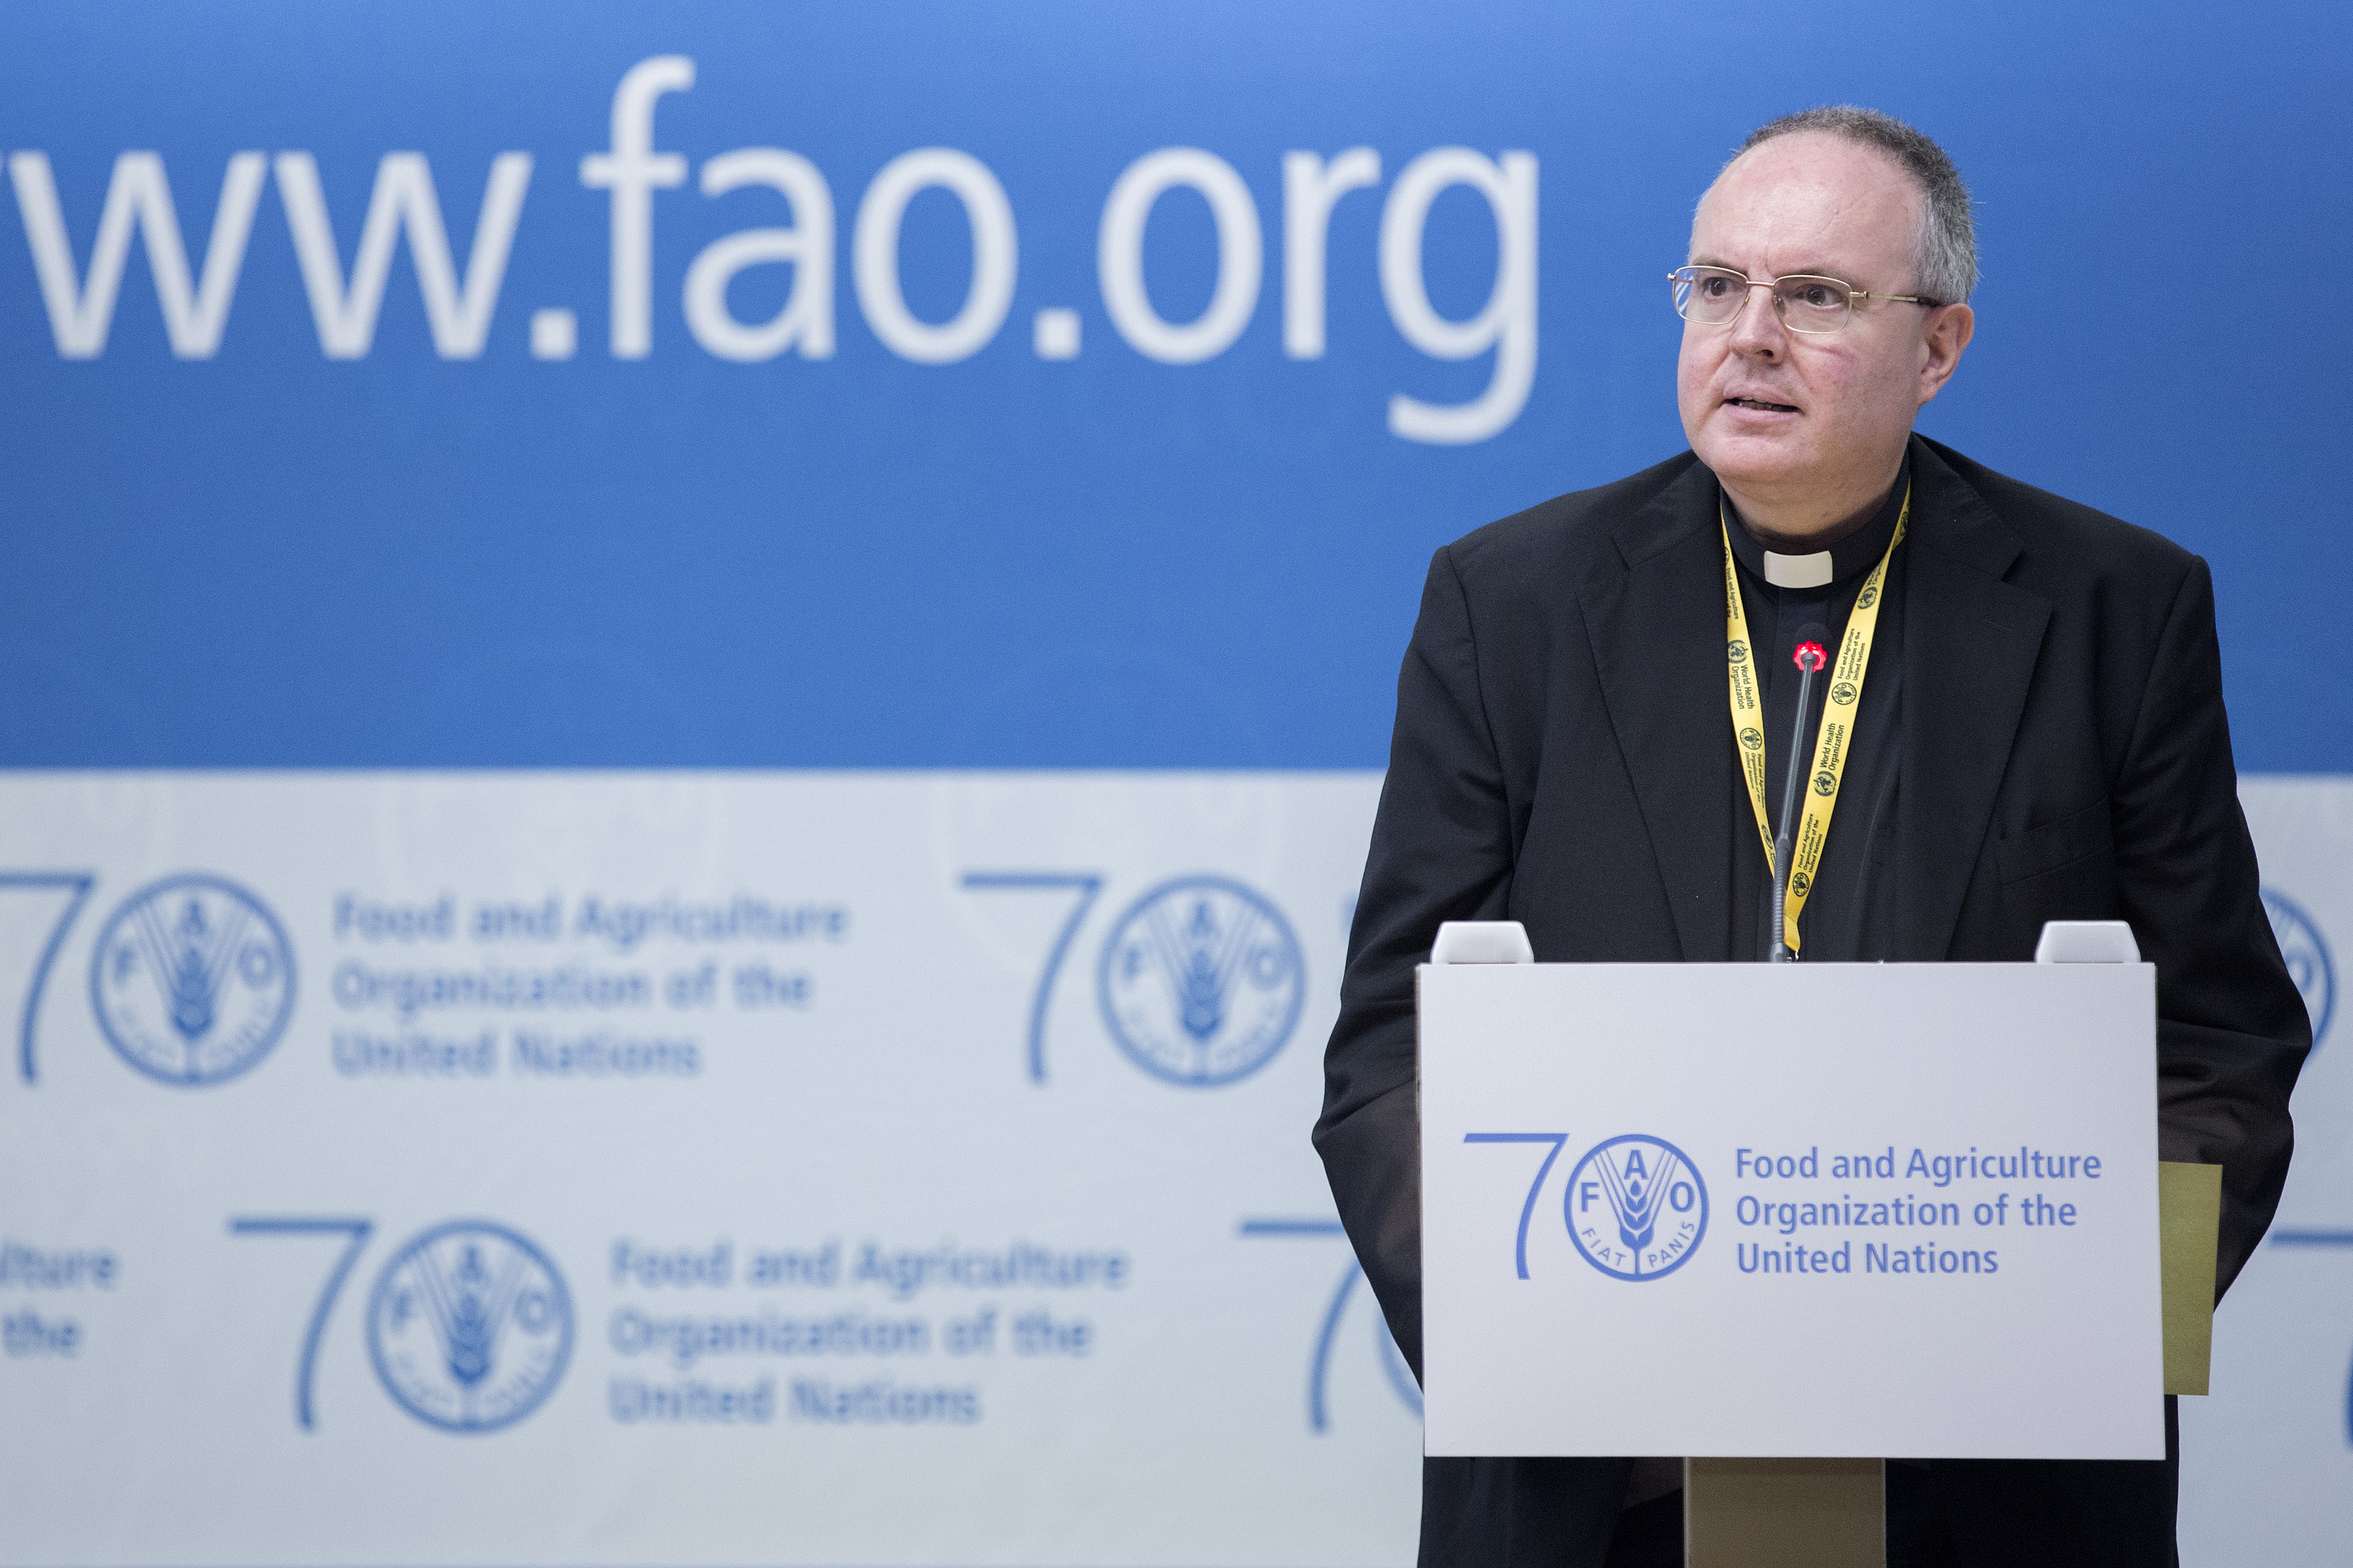 Statement by head of delegation of the Holy See